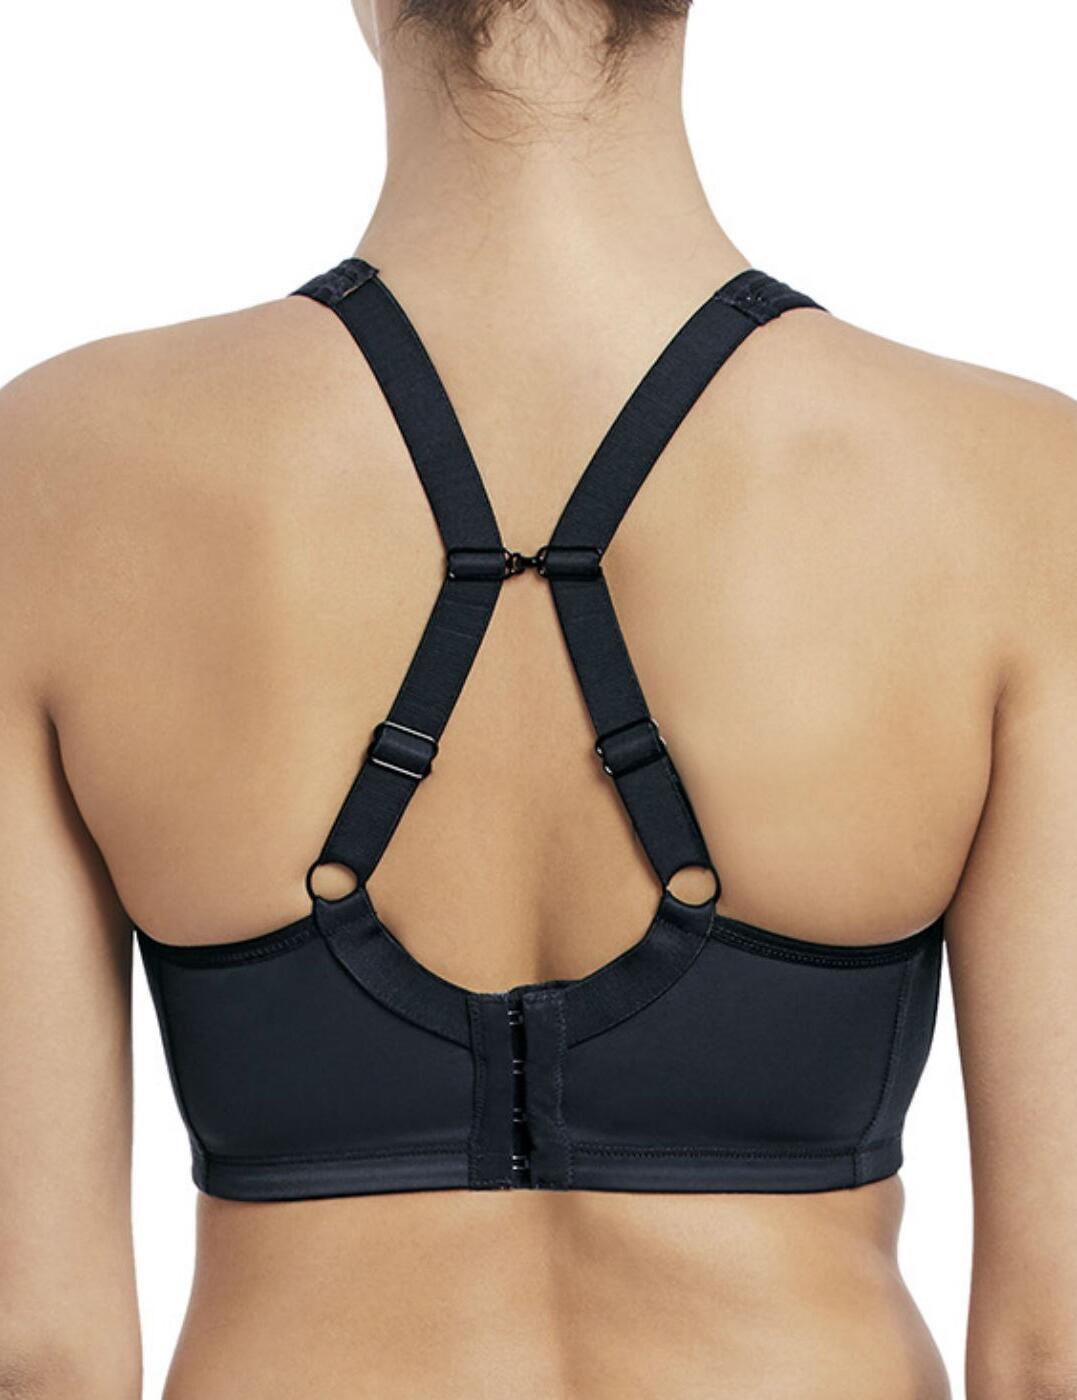 Freya-Active-Sonic-Sports-Bra-4892-Underwired-High-Impact-Gym-Workout-Bras thumbnail 21